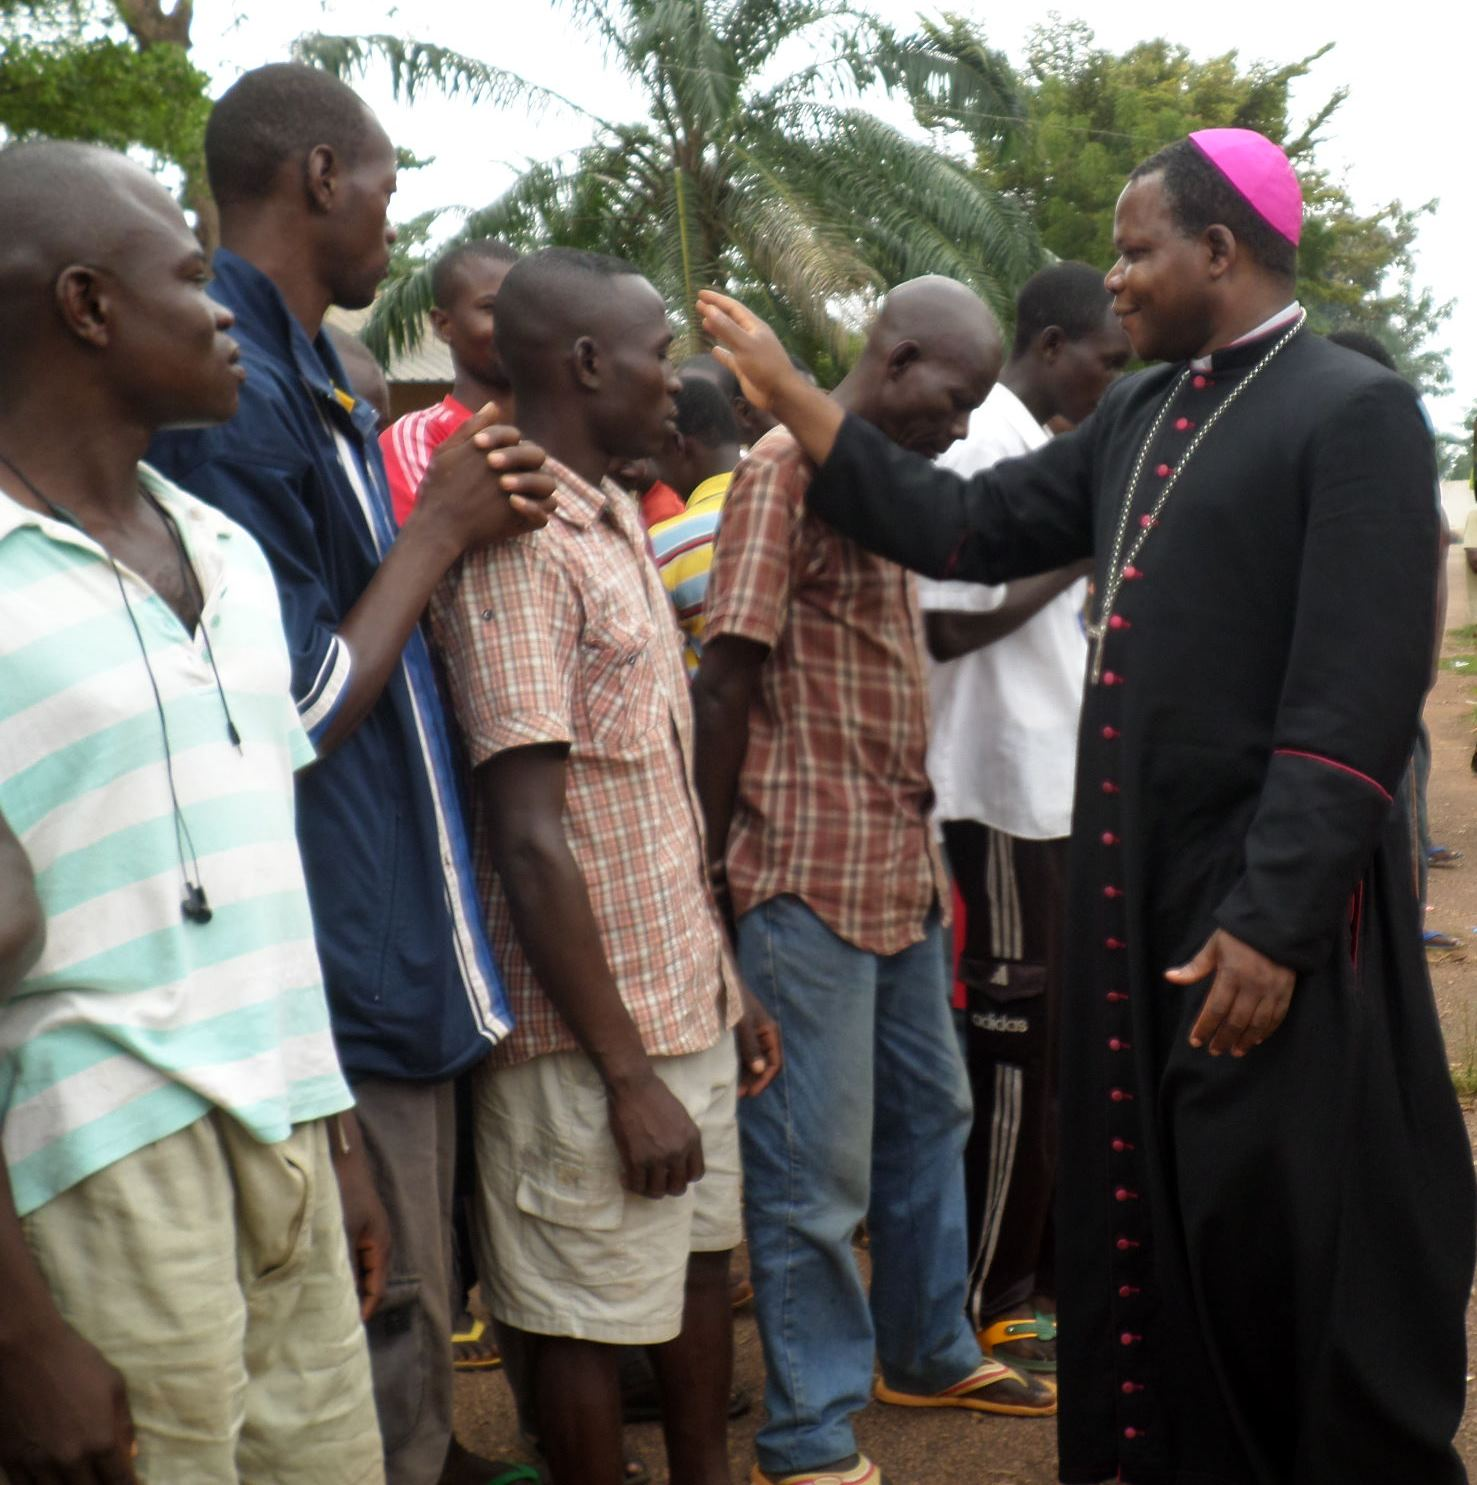 Visit of Archbishop Dieudonné Nzapalainga to Camp Beal